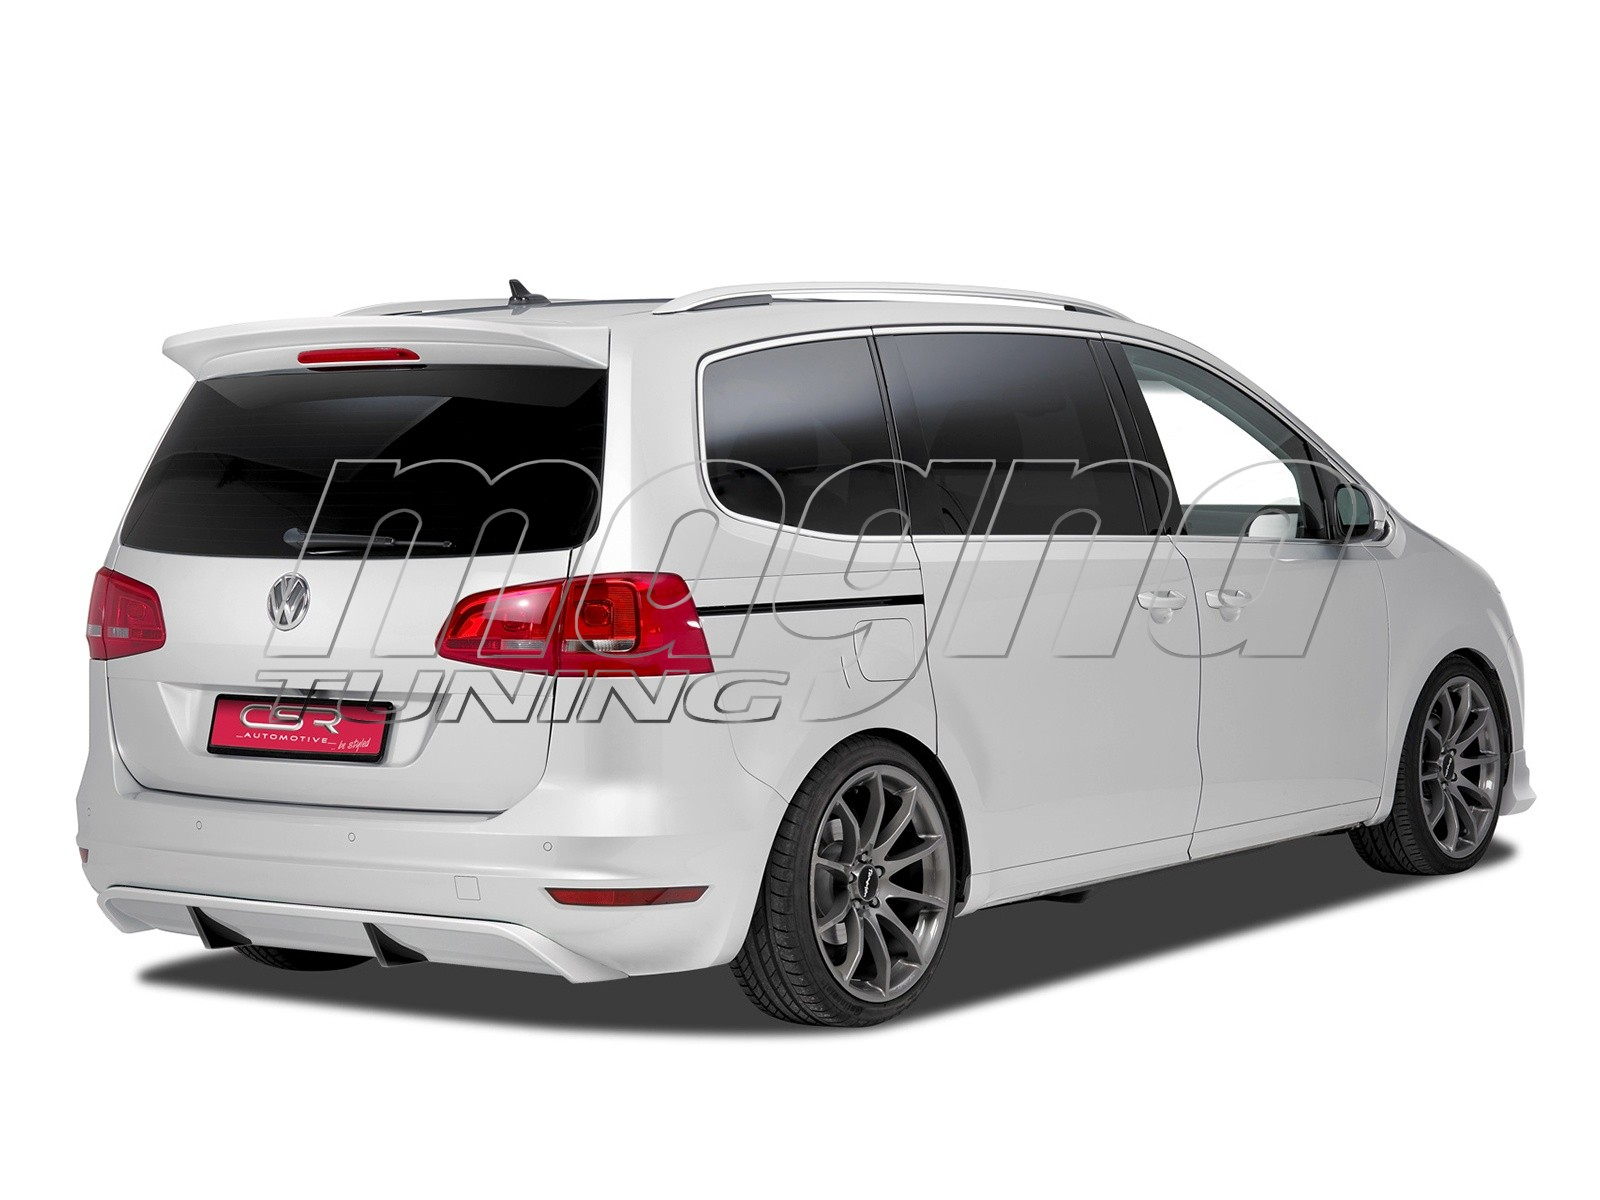 vw sharan 7n crono body kit. Black Bedroom Furniture Sets. Home Design Ideas